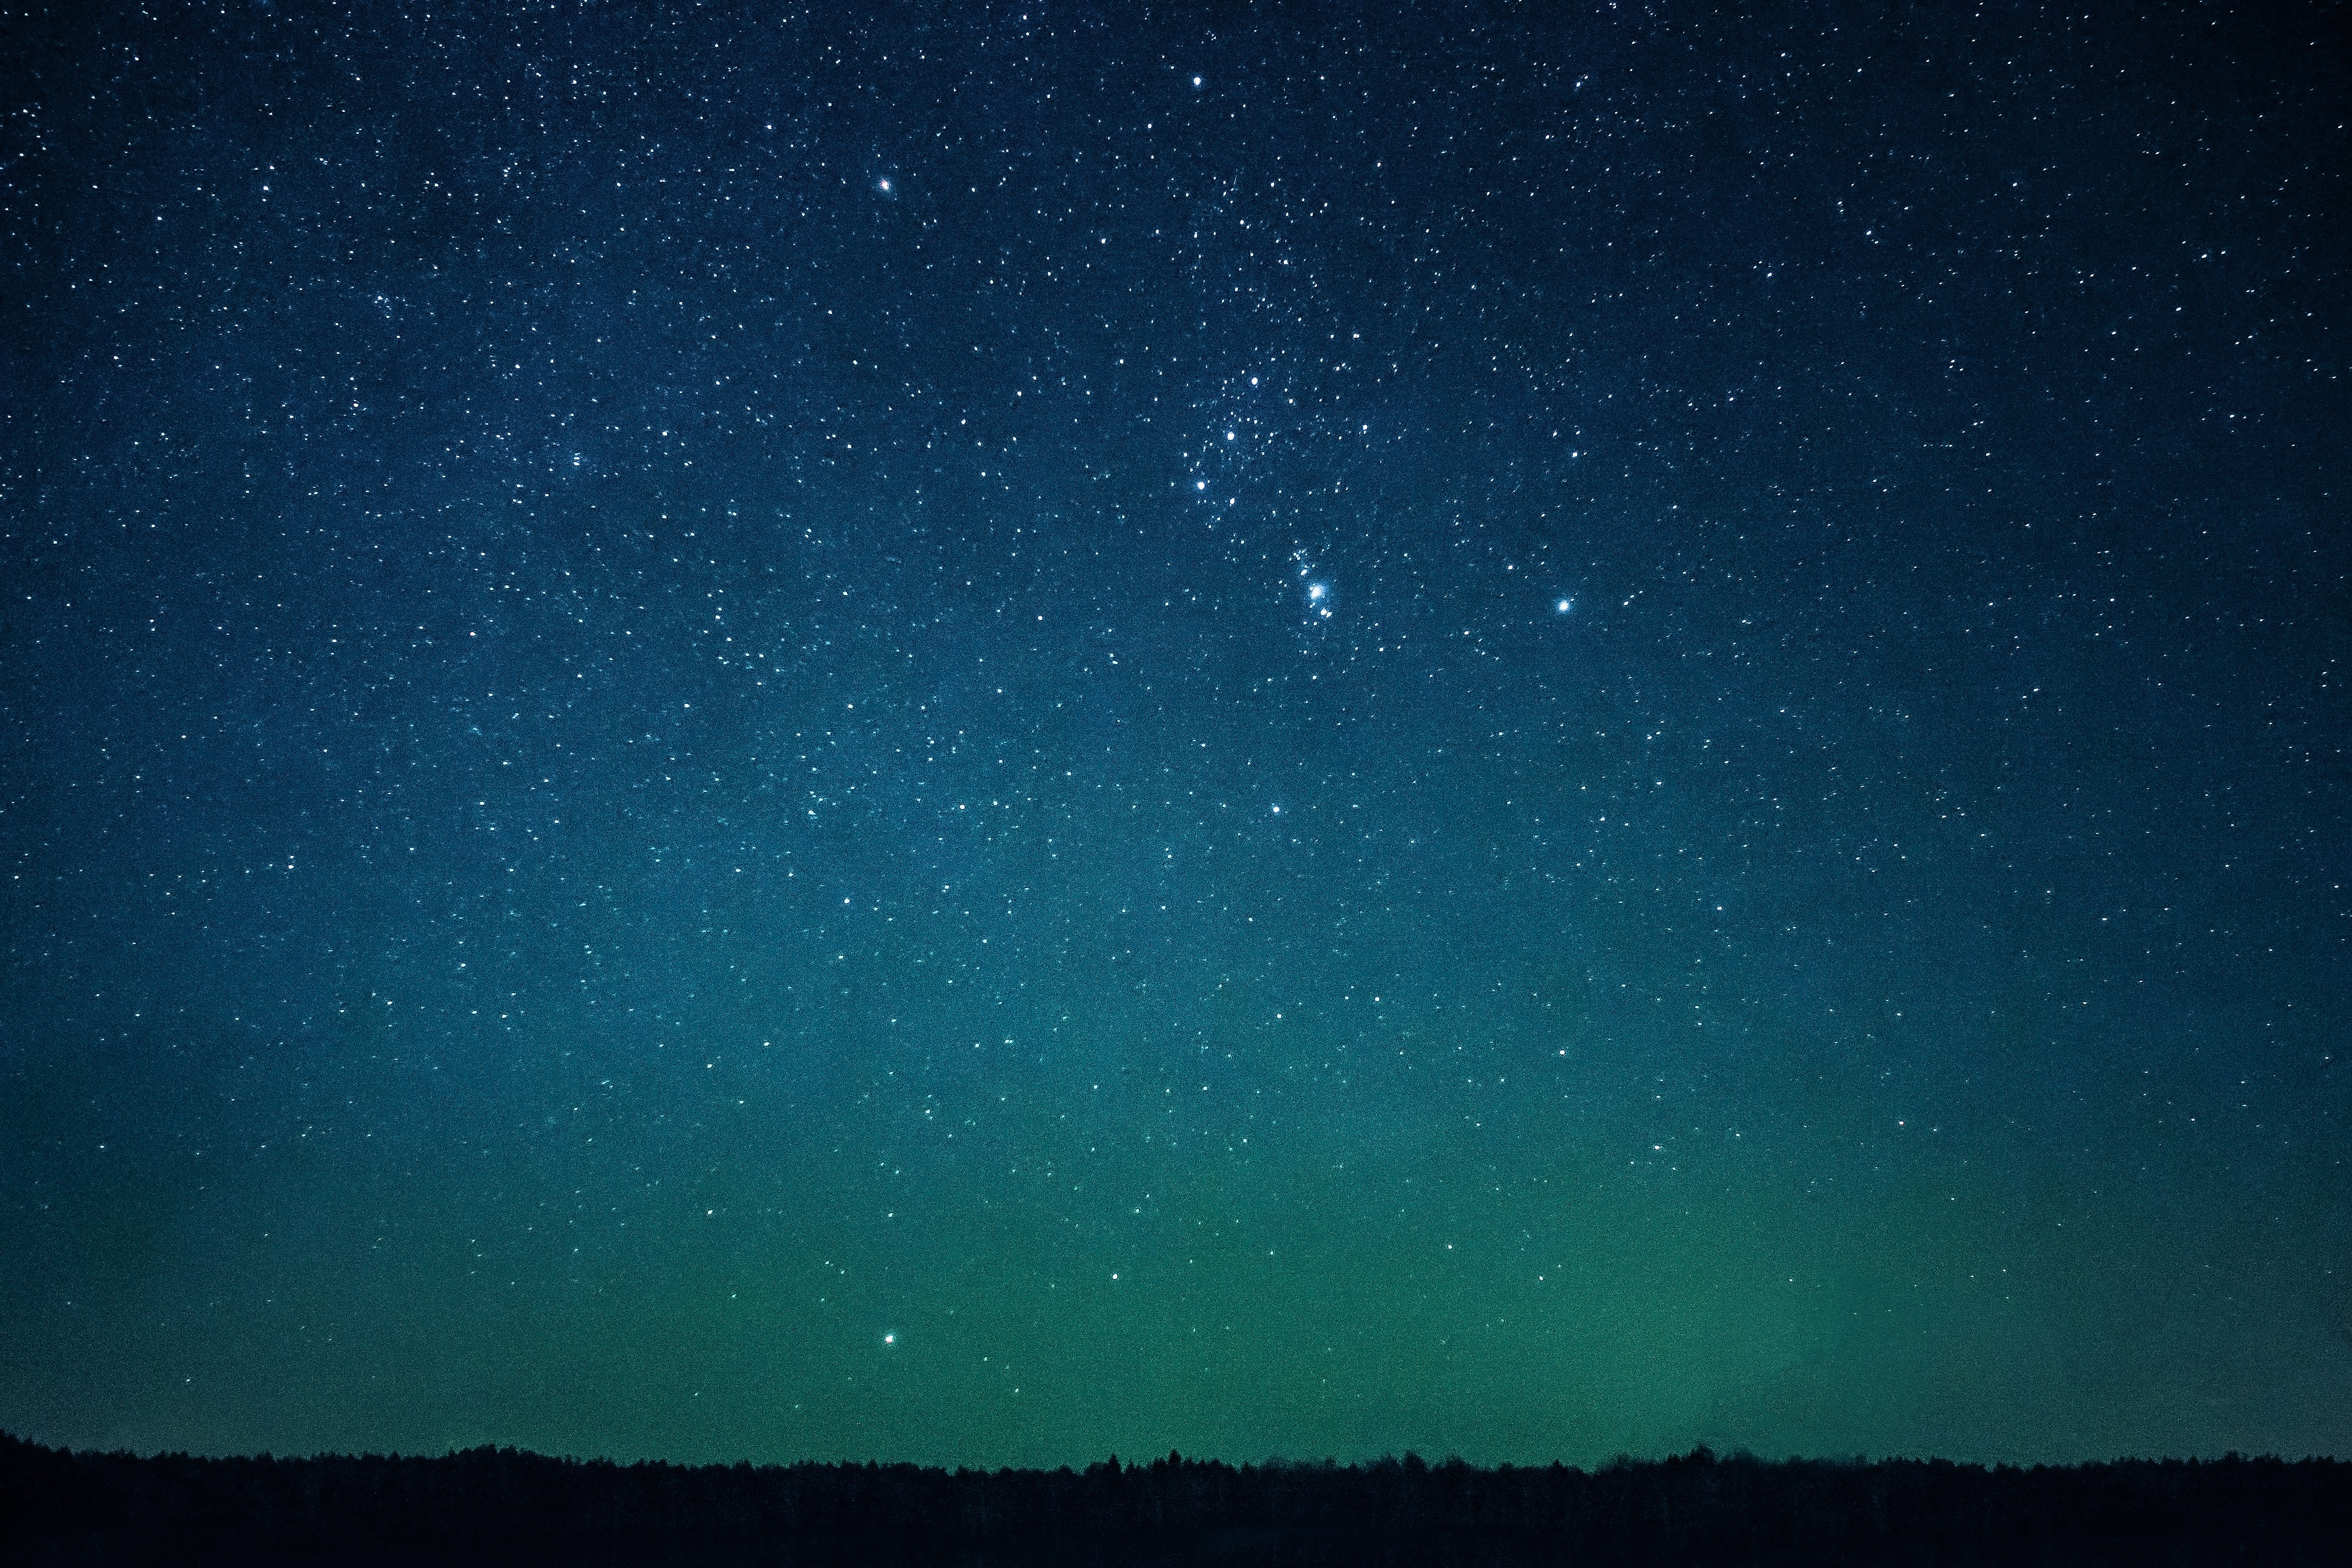 Stars in Night Sky, Peaceful, Universe, Twinkle, Stars, HQ Photo